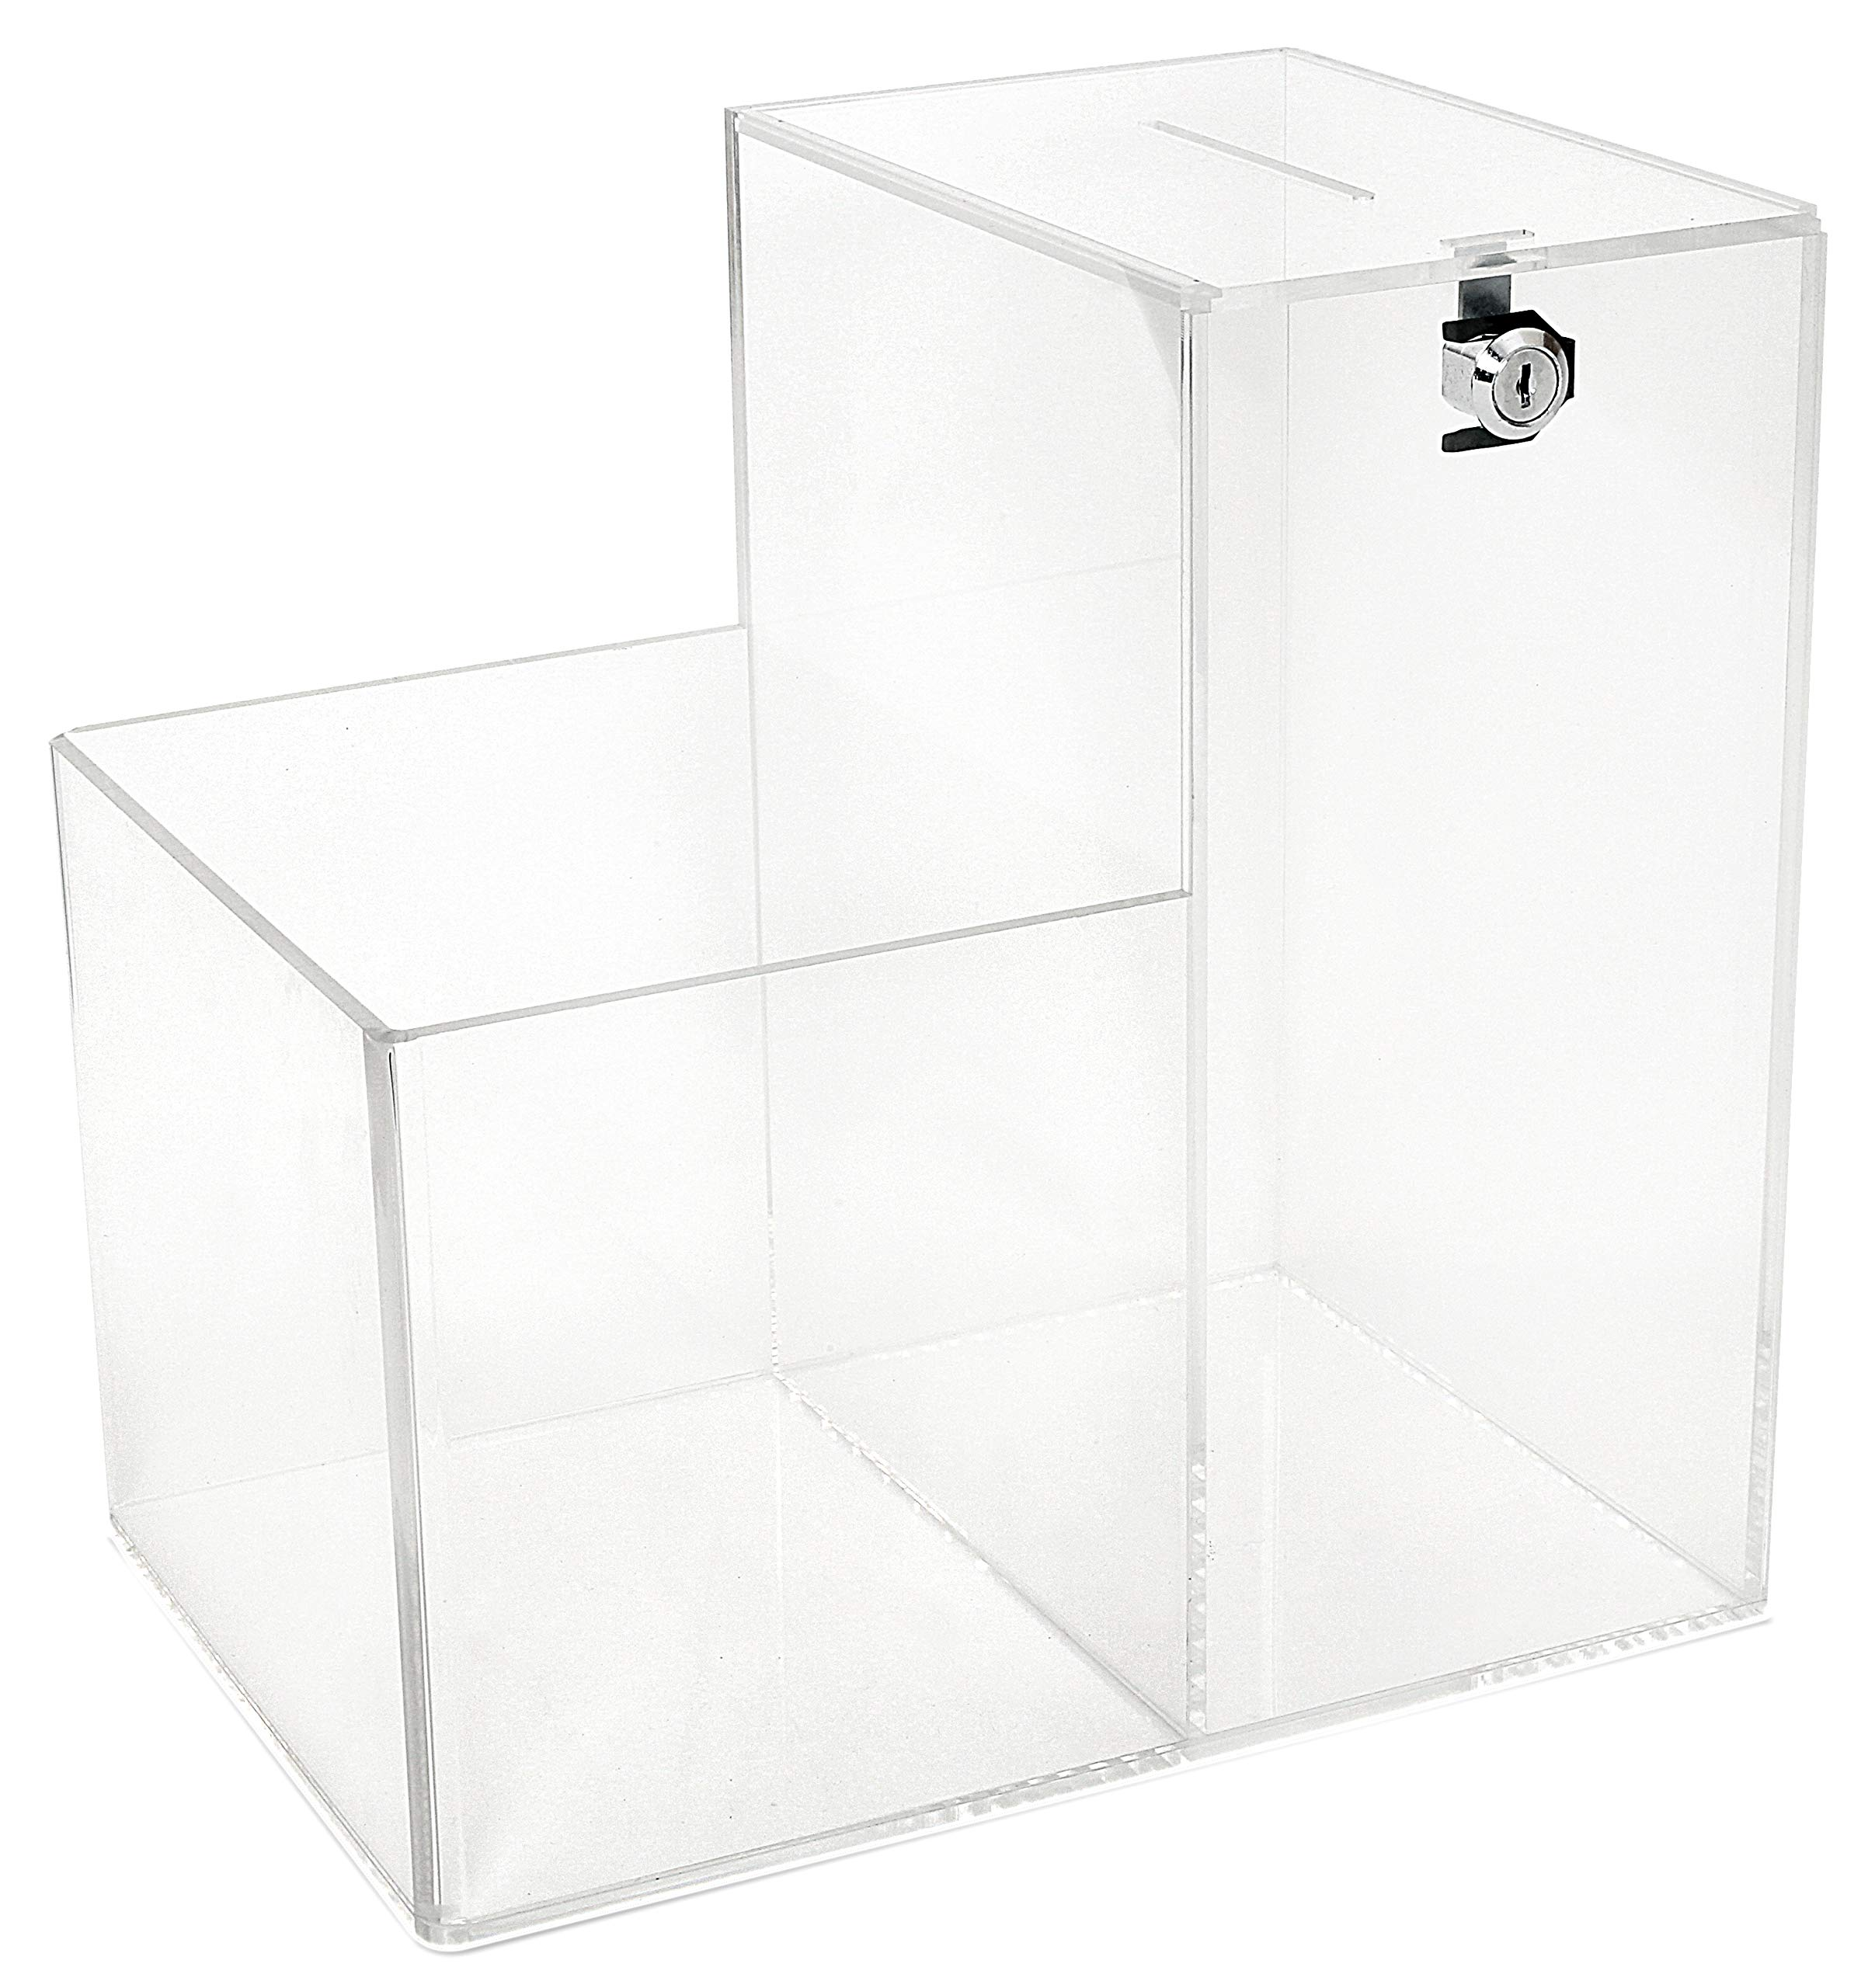 Deluxe Charity Donation Collection Box for Fundraising Campaigns - with Two Compartments for Give Money Locked and Take a Prize Open - Great for Suggestion Box or Tip Container (Large) by My Charity Boxes